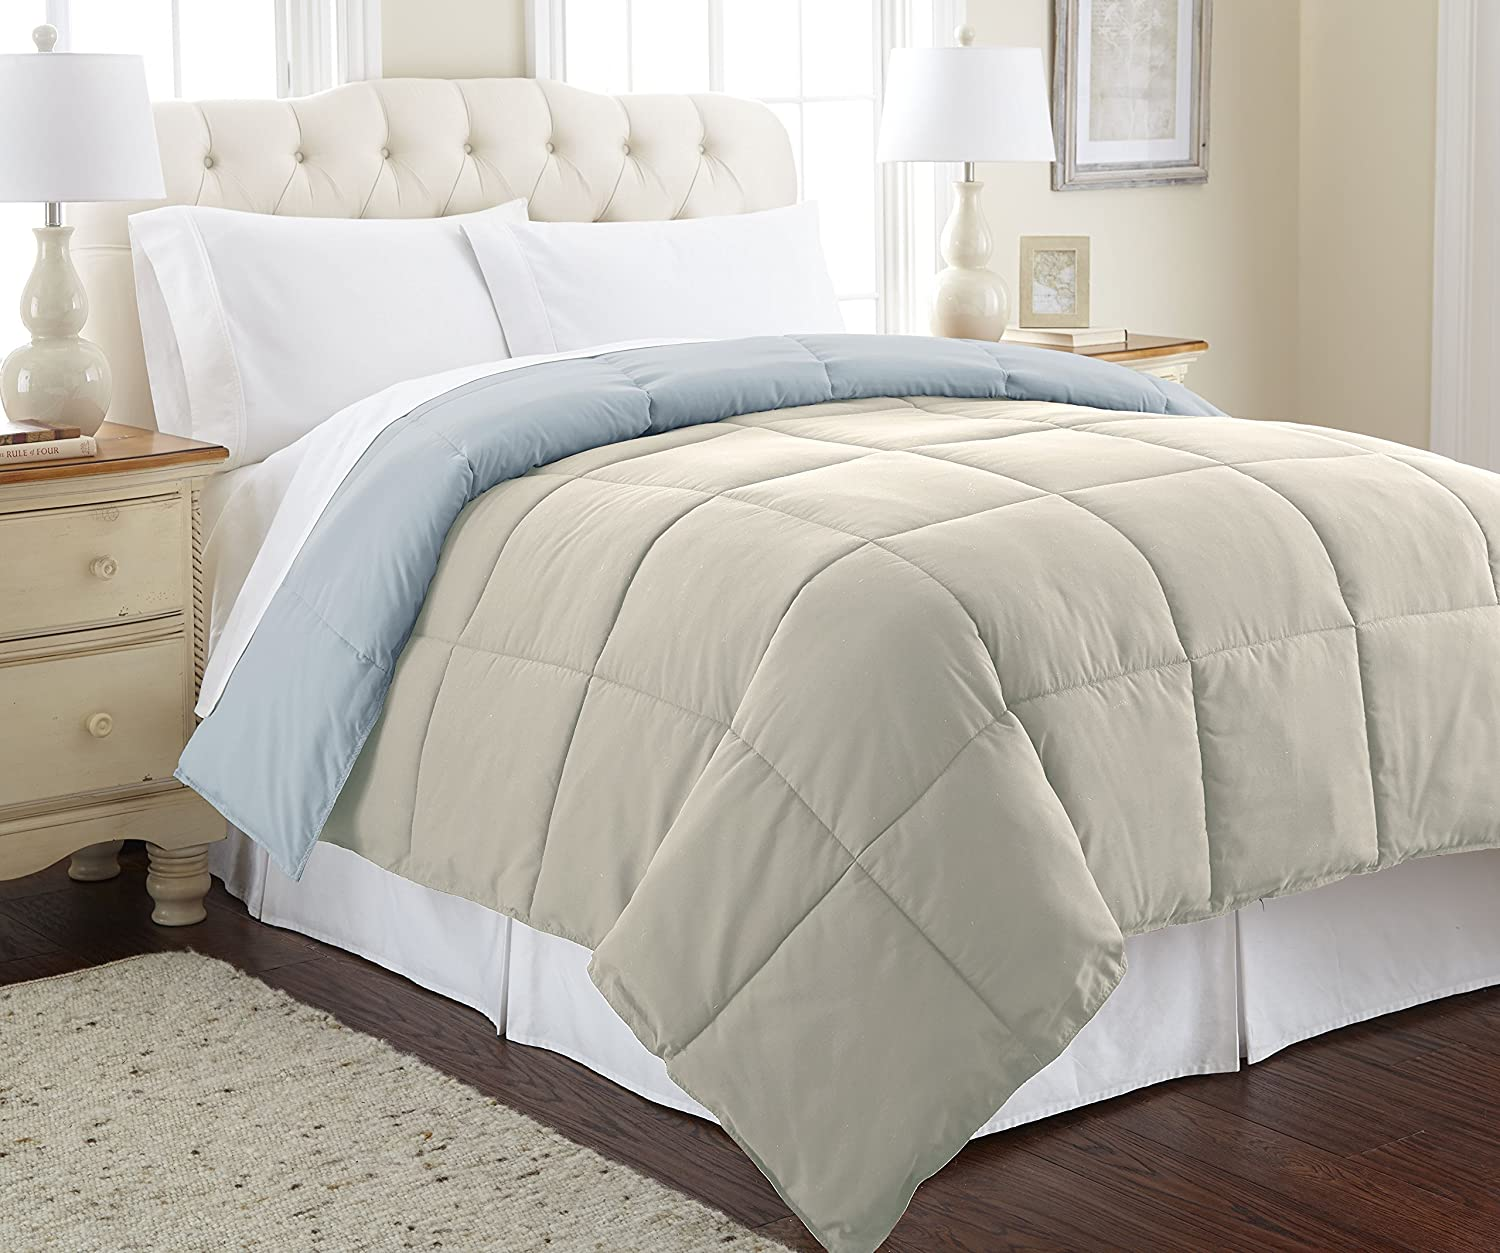 Amrapur Overseas | Goose Down Alternative Microfiber Quilted Reversible Comforter / Duvet Insert